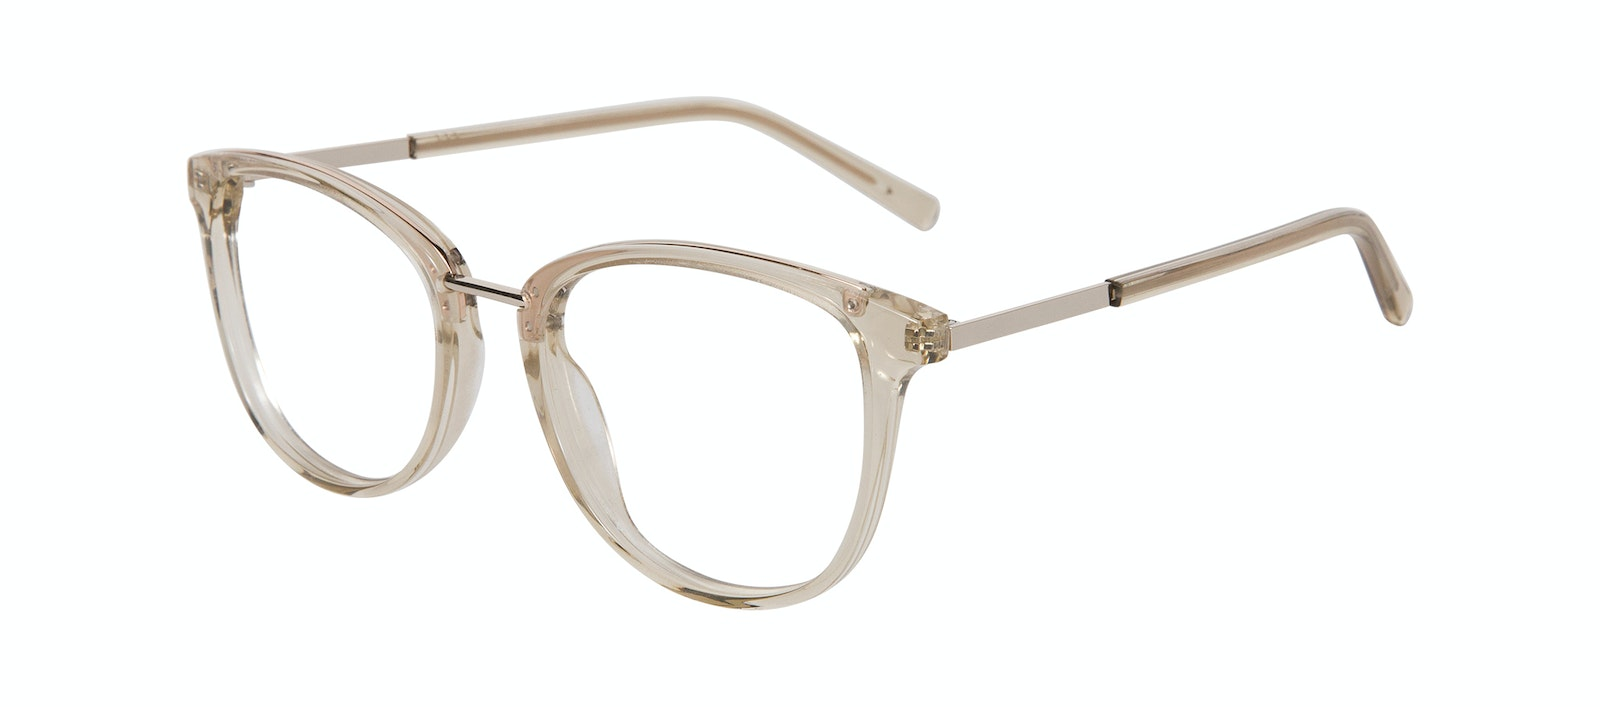 Affordable Fashion Glasses Square Round Eyeglasses Women Bella Olive Tilt